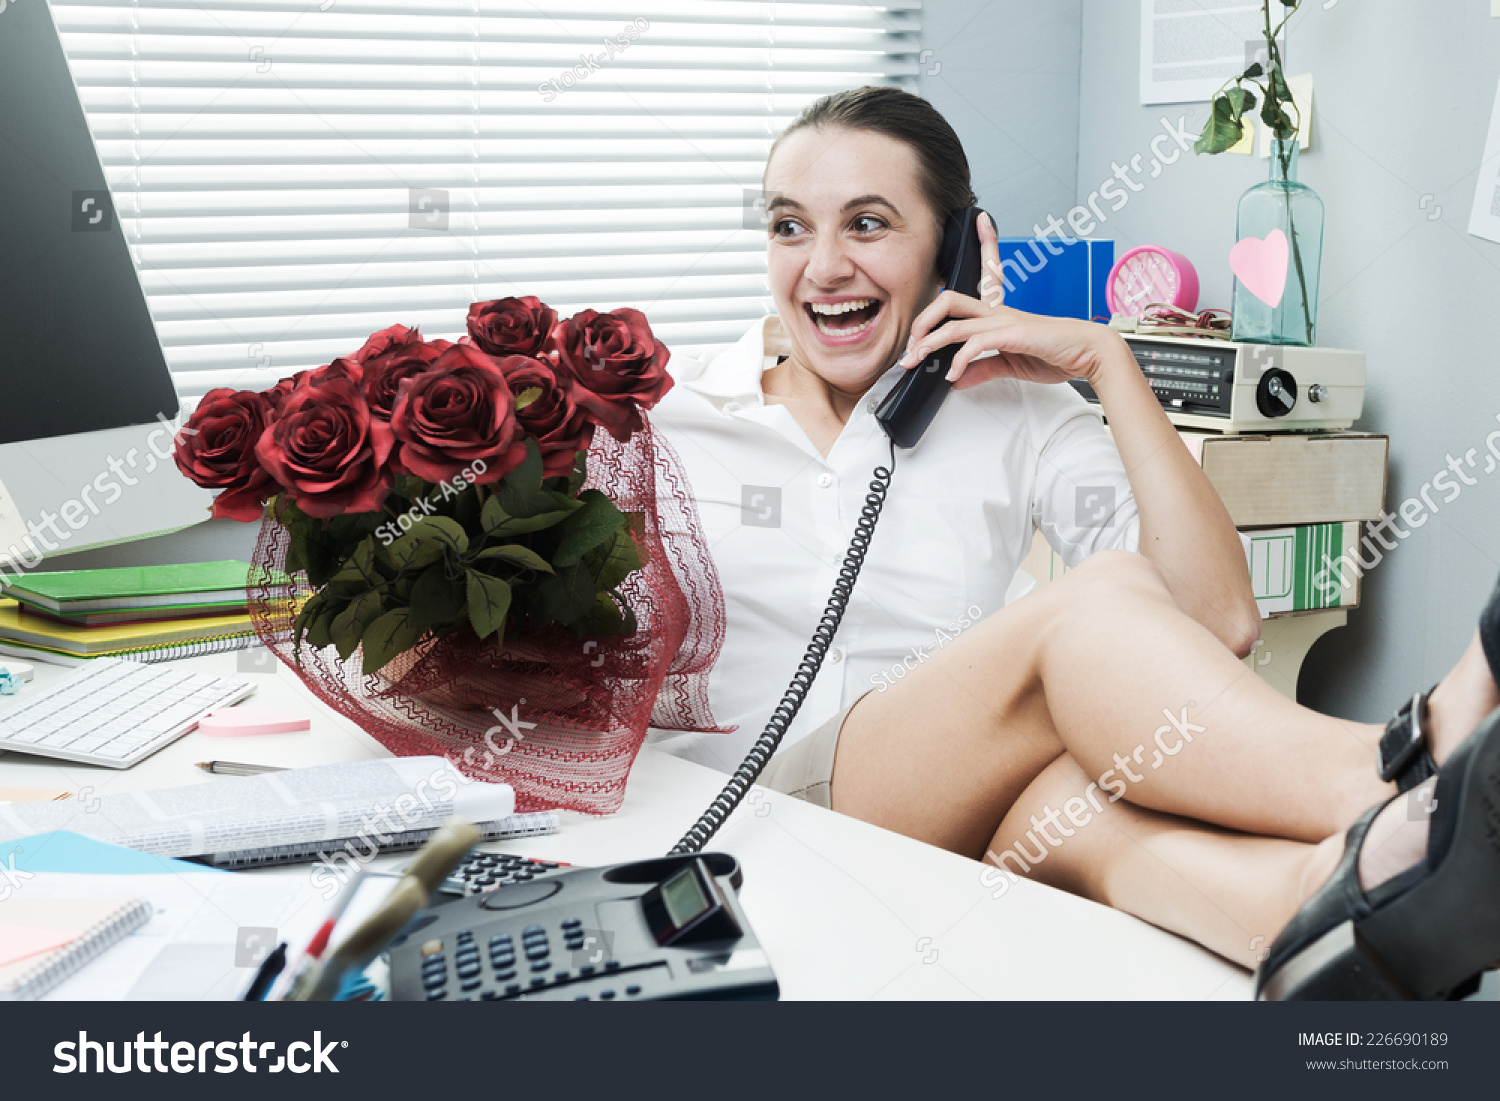 Frustrated office worker on the phone holding stock photo image - Female Office Worker Feet Up On Desk Talking On The Phone And Holding Roses